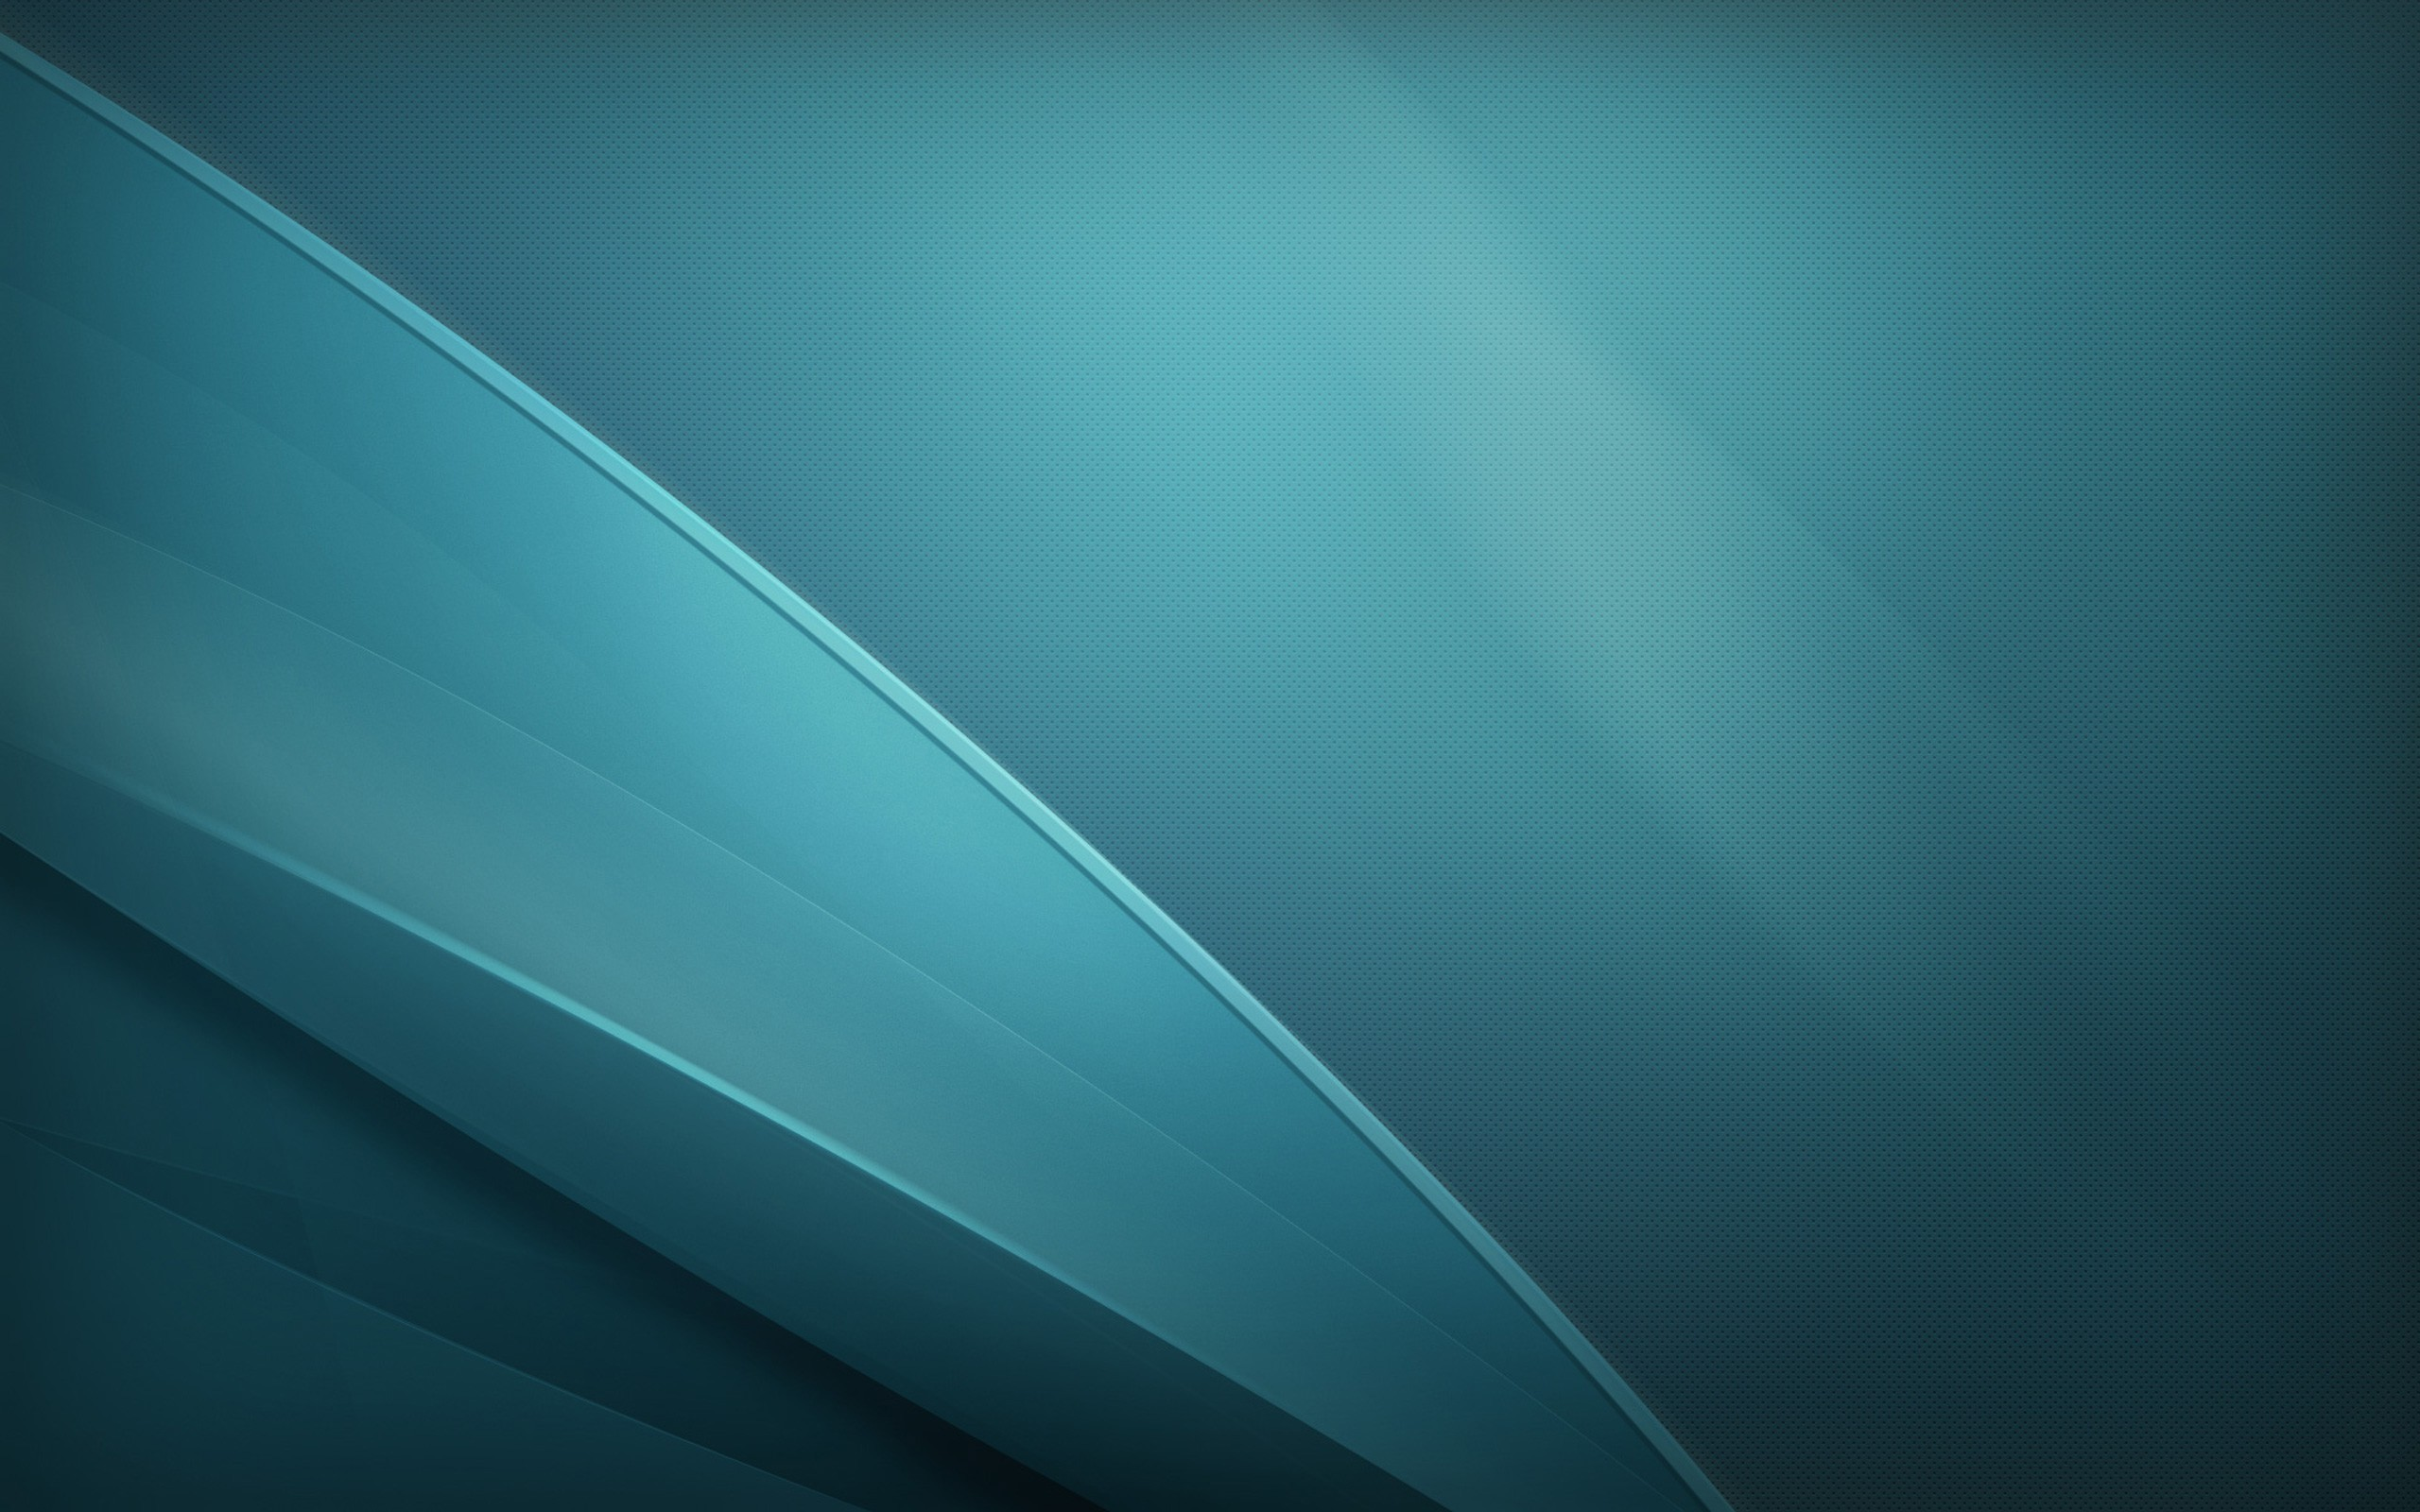 minimalism, simple, simple background, abstract wallpapers hd